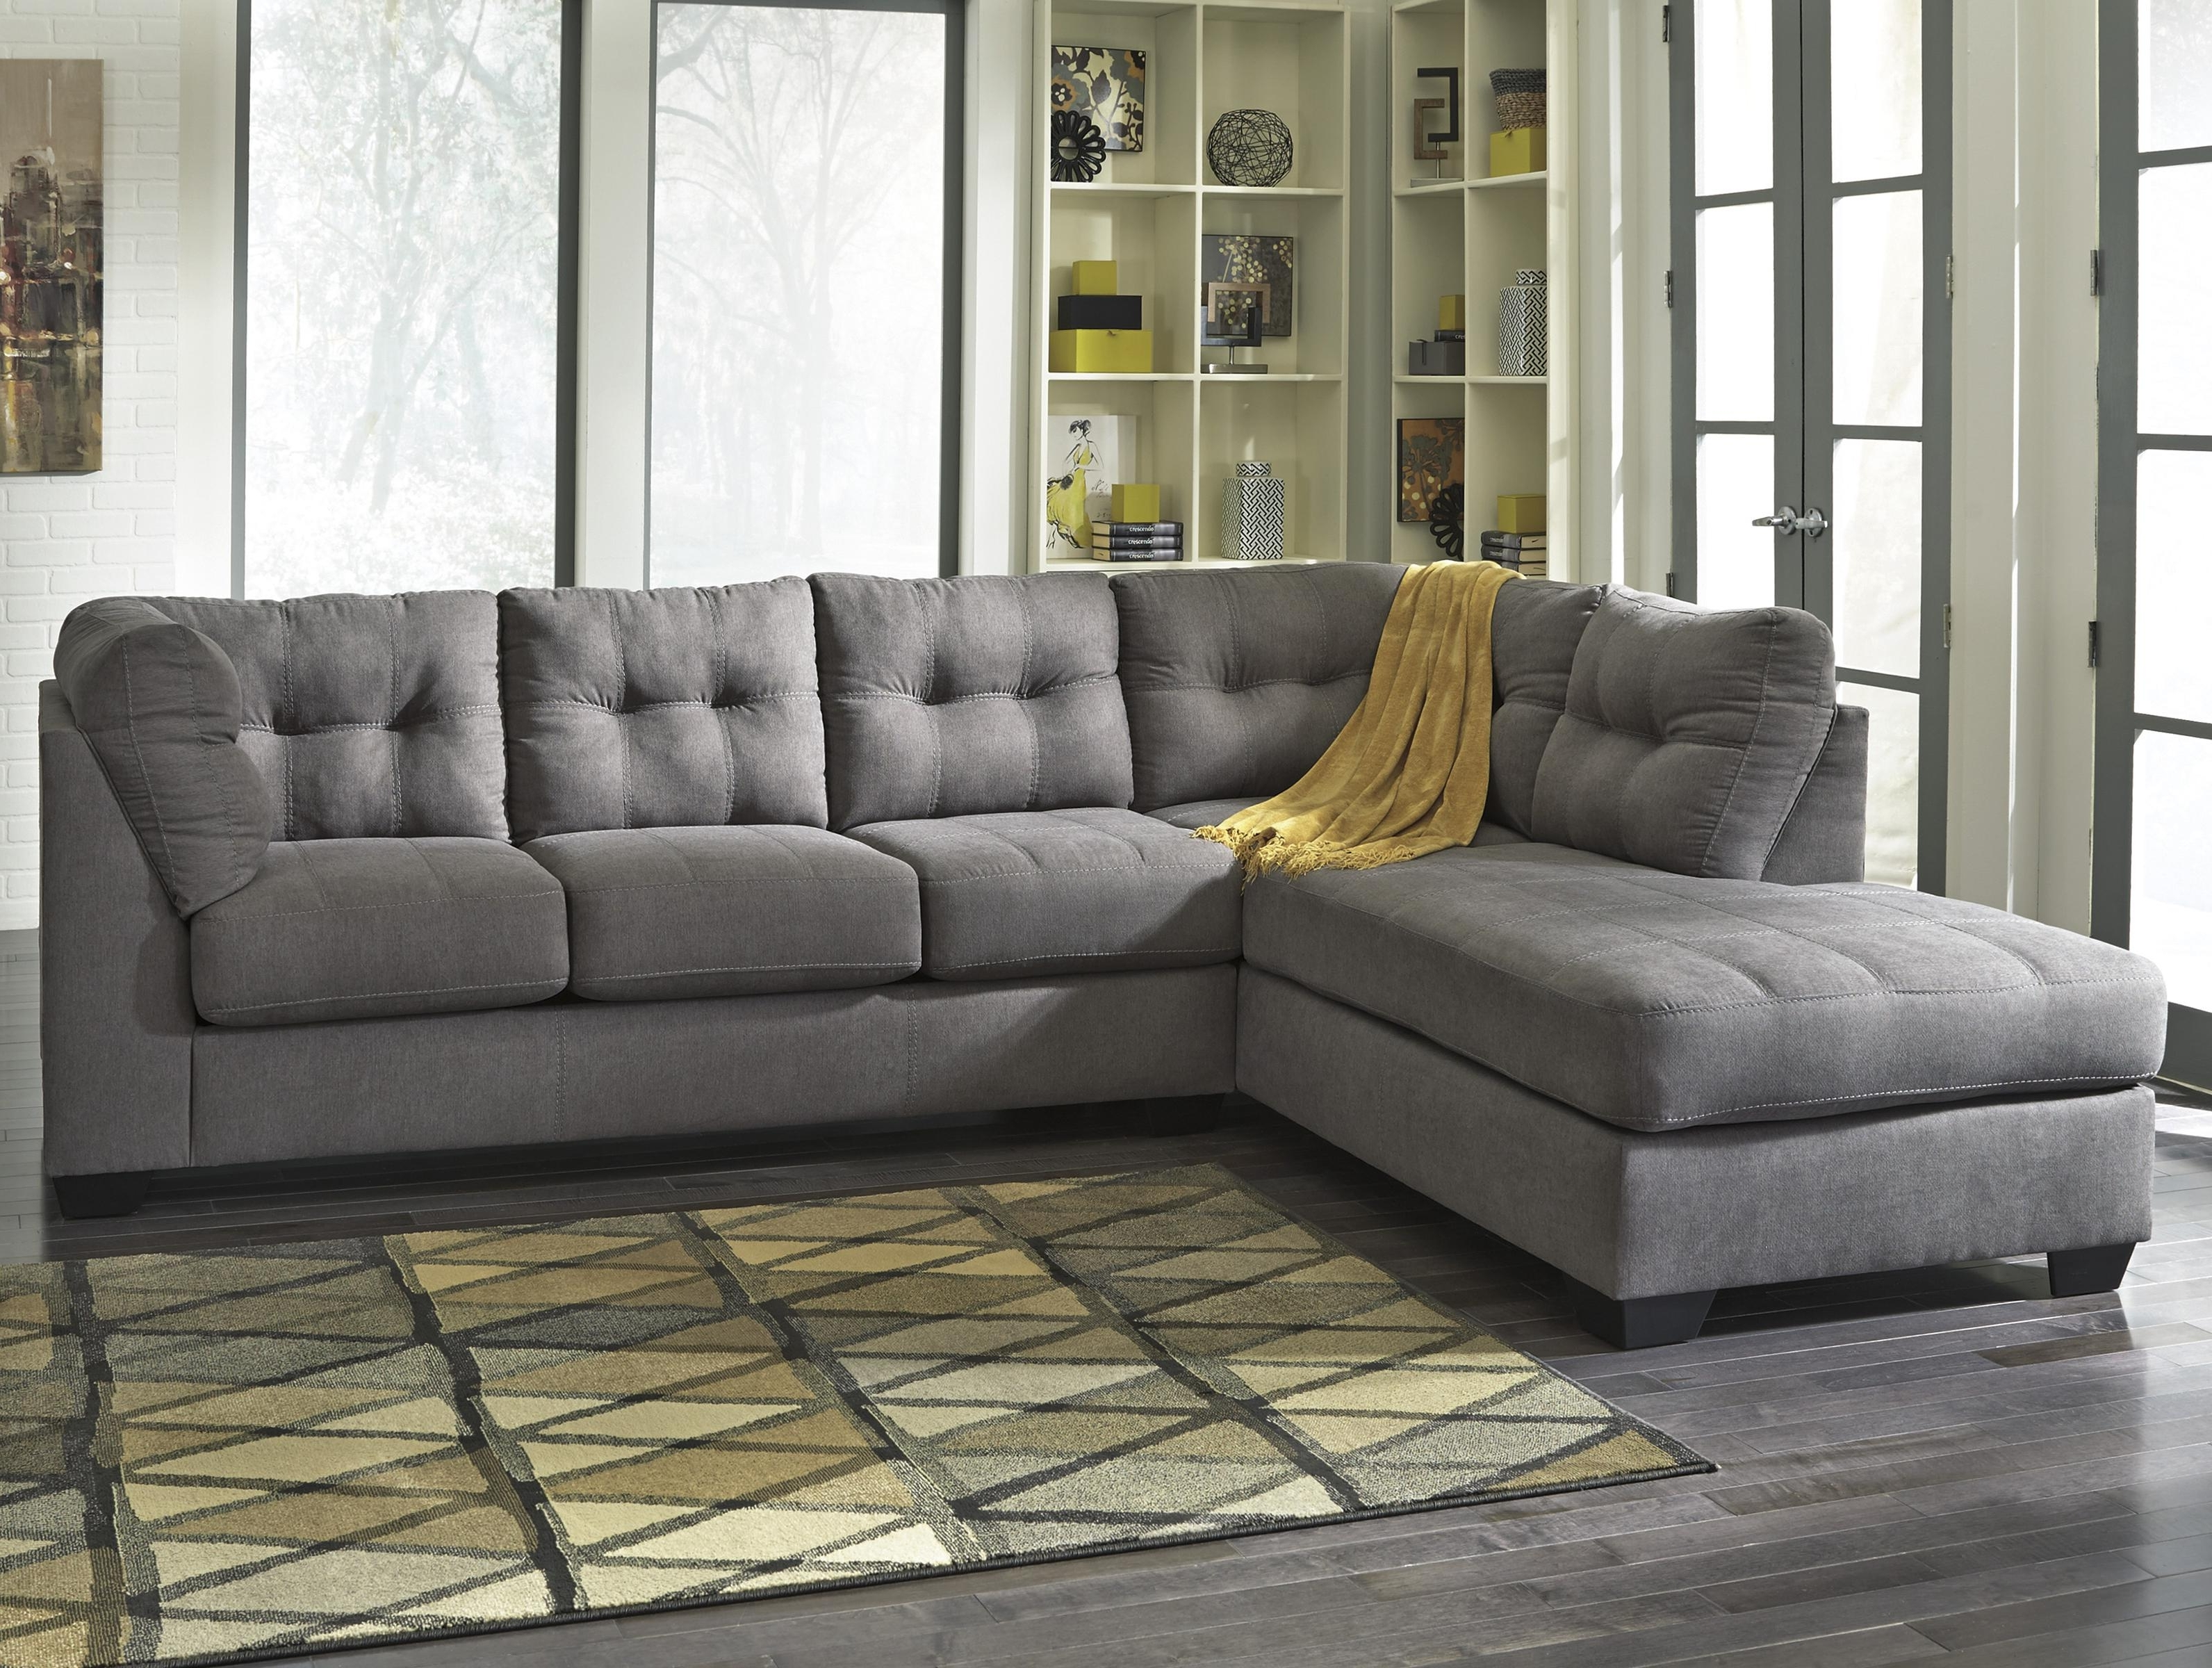 Most Current Benchcraftashley Maier – Charcoal 2 Piece Sectional With Left In Memphis Tn Sectional Sofas (View 17 of 20)